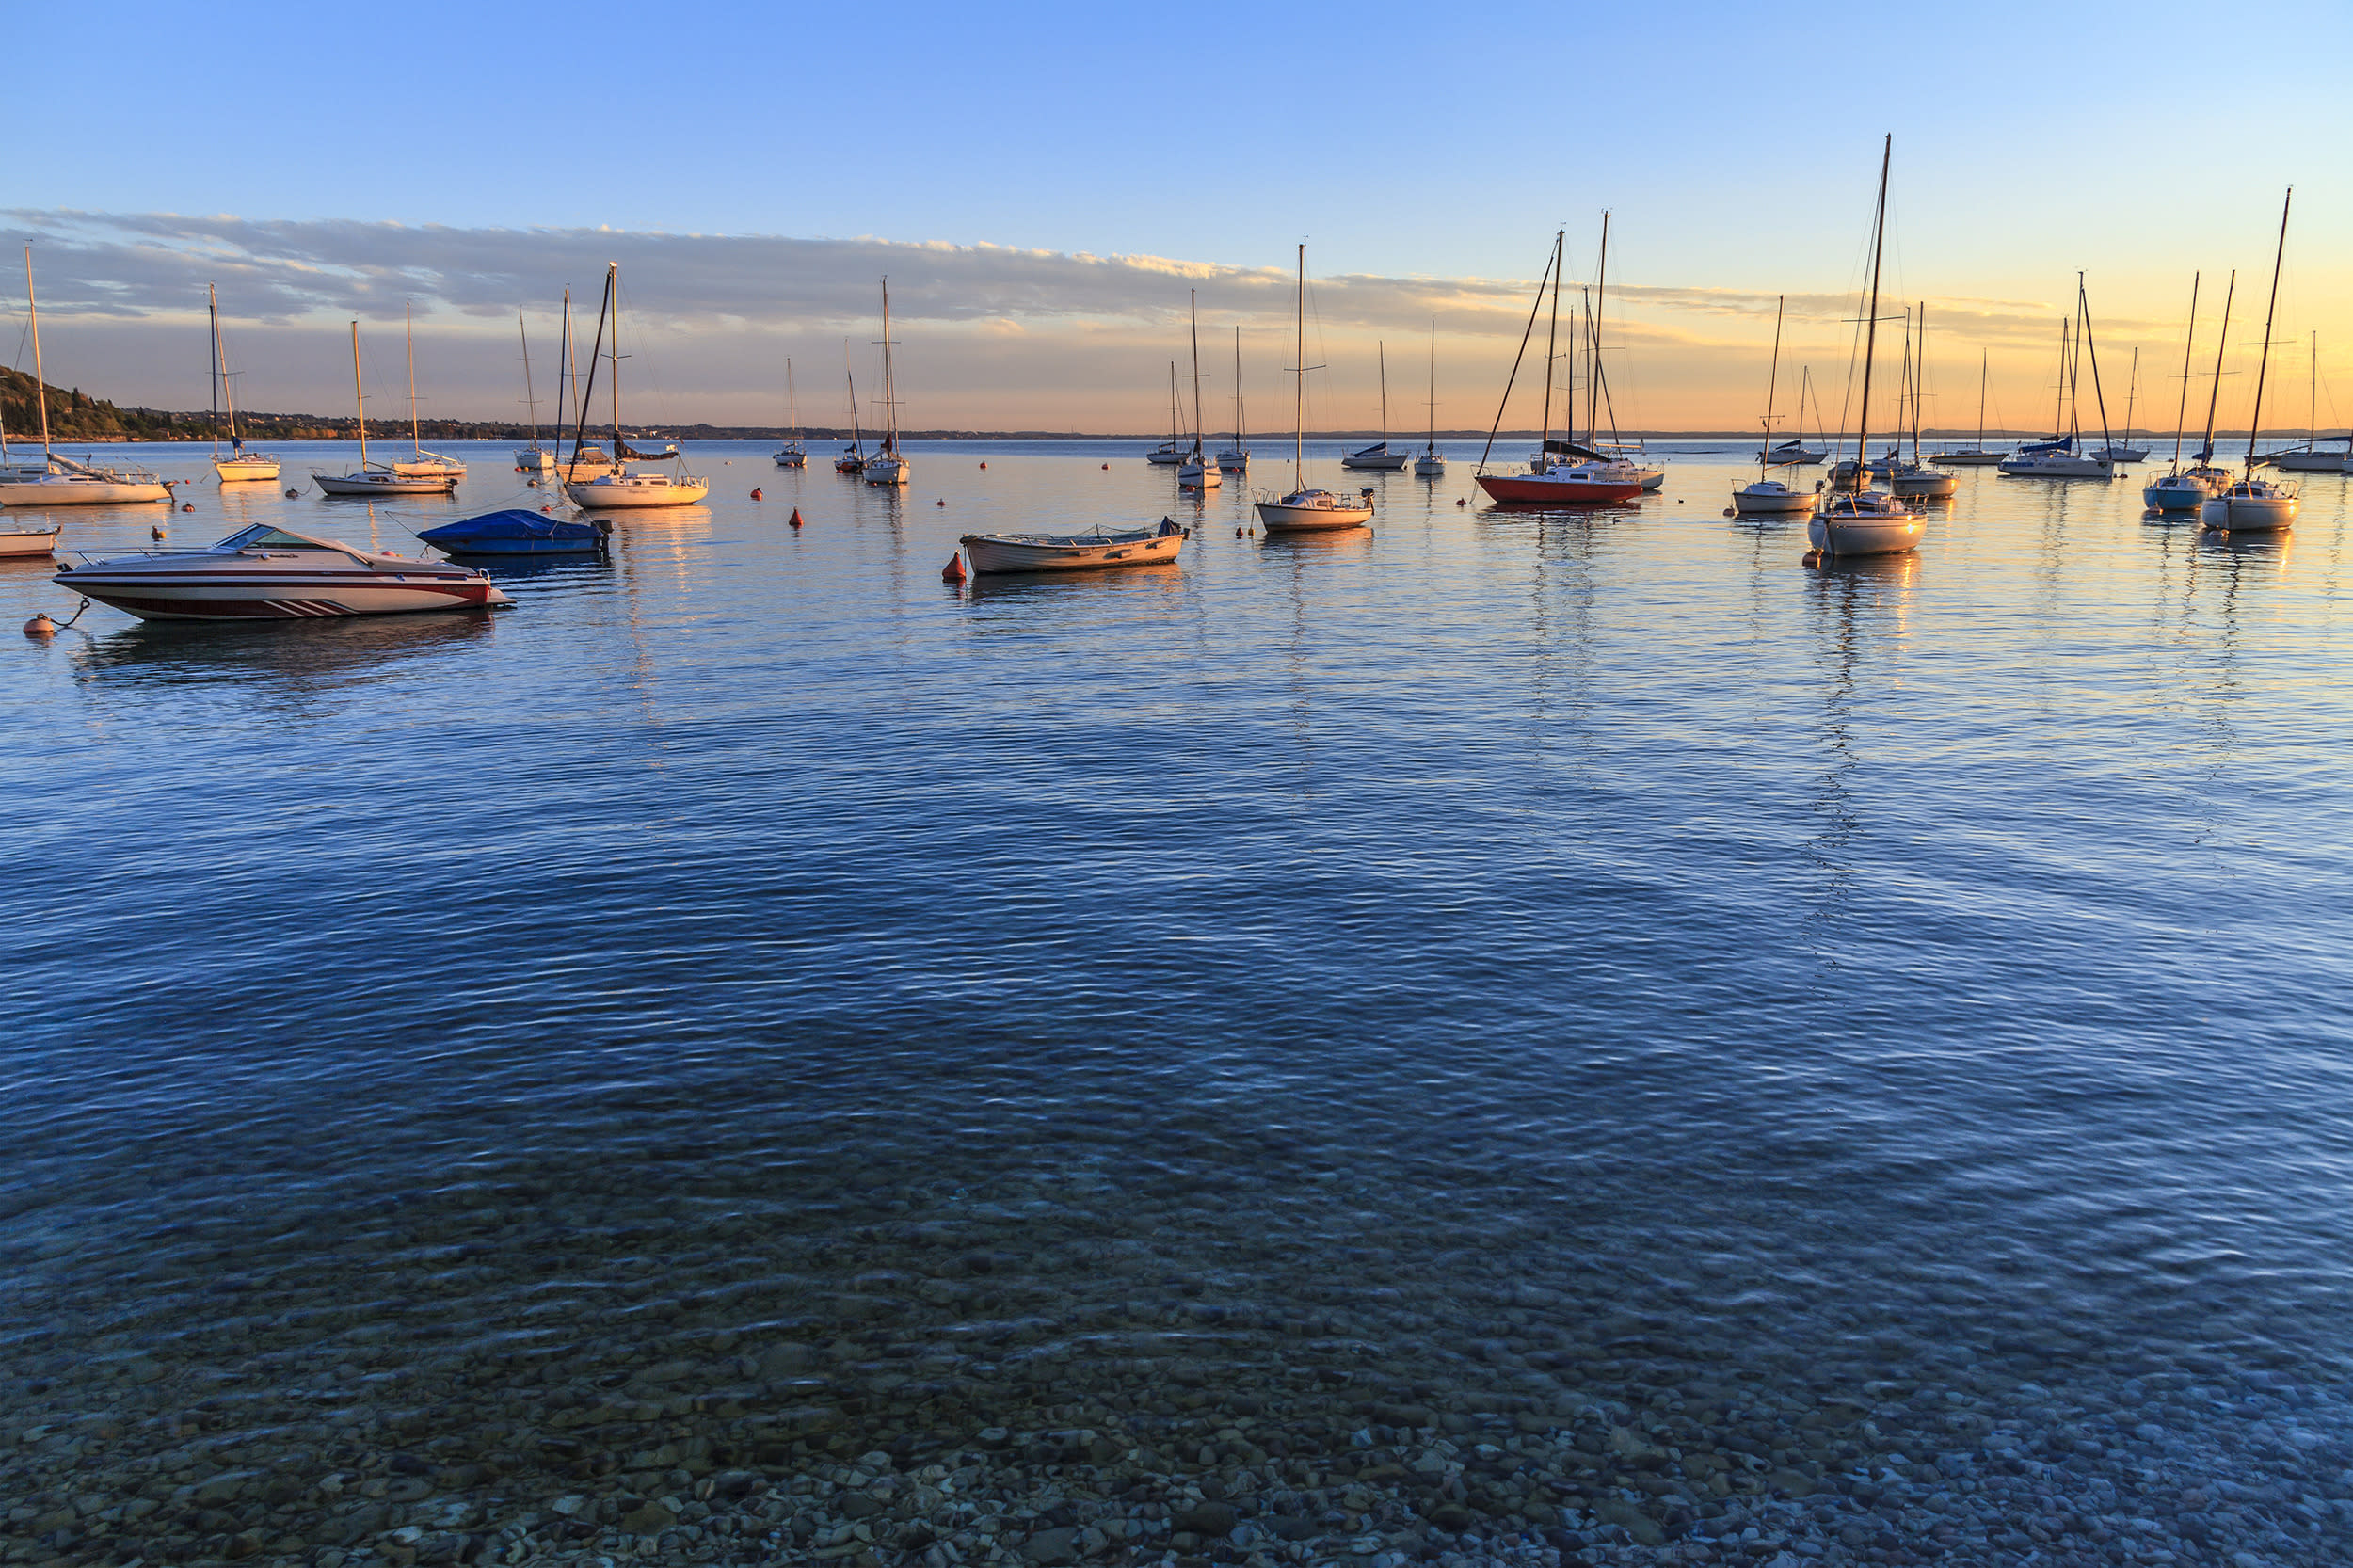 """<span style=""""font-family:helvetica, arial;font-size:16px;background-color:rgb(255, 255, 255);"""">A honeymoon on Lake Garda will remind you why you fell in love to begin with. Italy's largest lake remains an unspoilt haven of peace for honeymooners. On the shores of the lake you will find several charming villages. On the northwestern side of the lake, and well worth a visit is Limone, with its cobbled streets, nestled among the lemon groves. A swim in the clear and warm water of Lake Garda is a must, especially in the summer. Surrounded by cypresses, vines, orange trees and citrus groves, Lake Garda is the essence of Italian romance.</span>"""